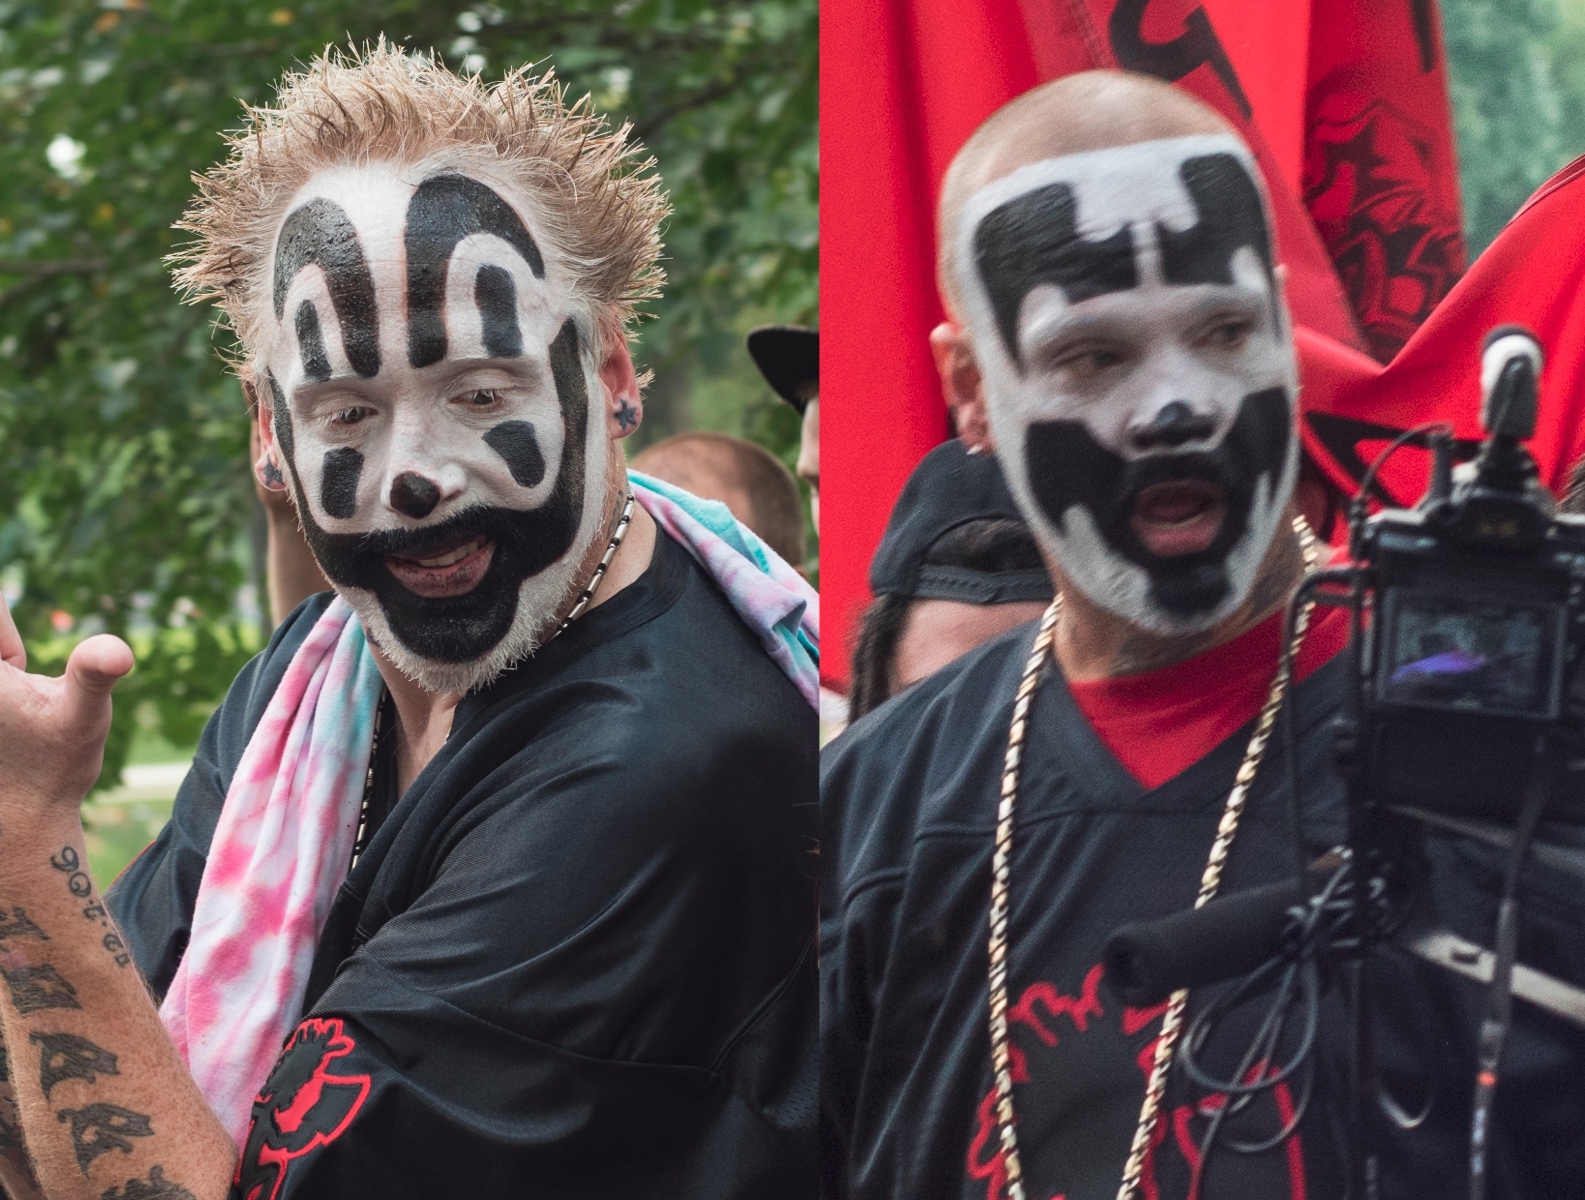 Insane Clown Posse - Wikipedia